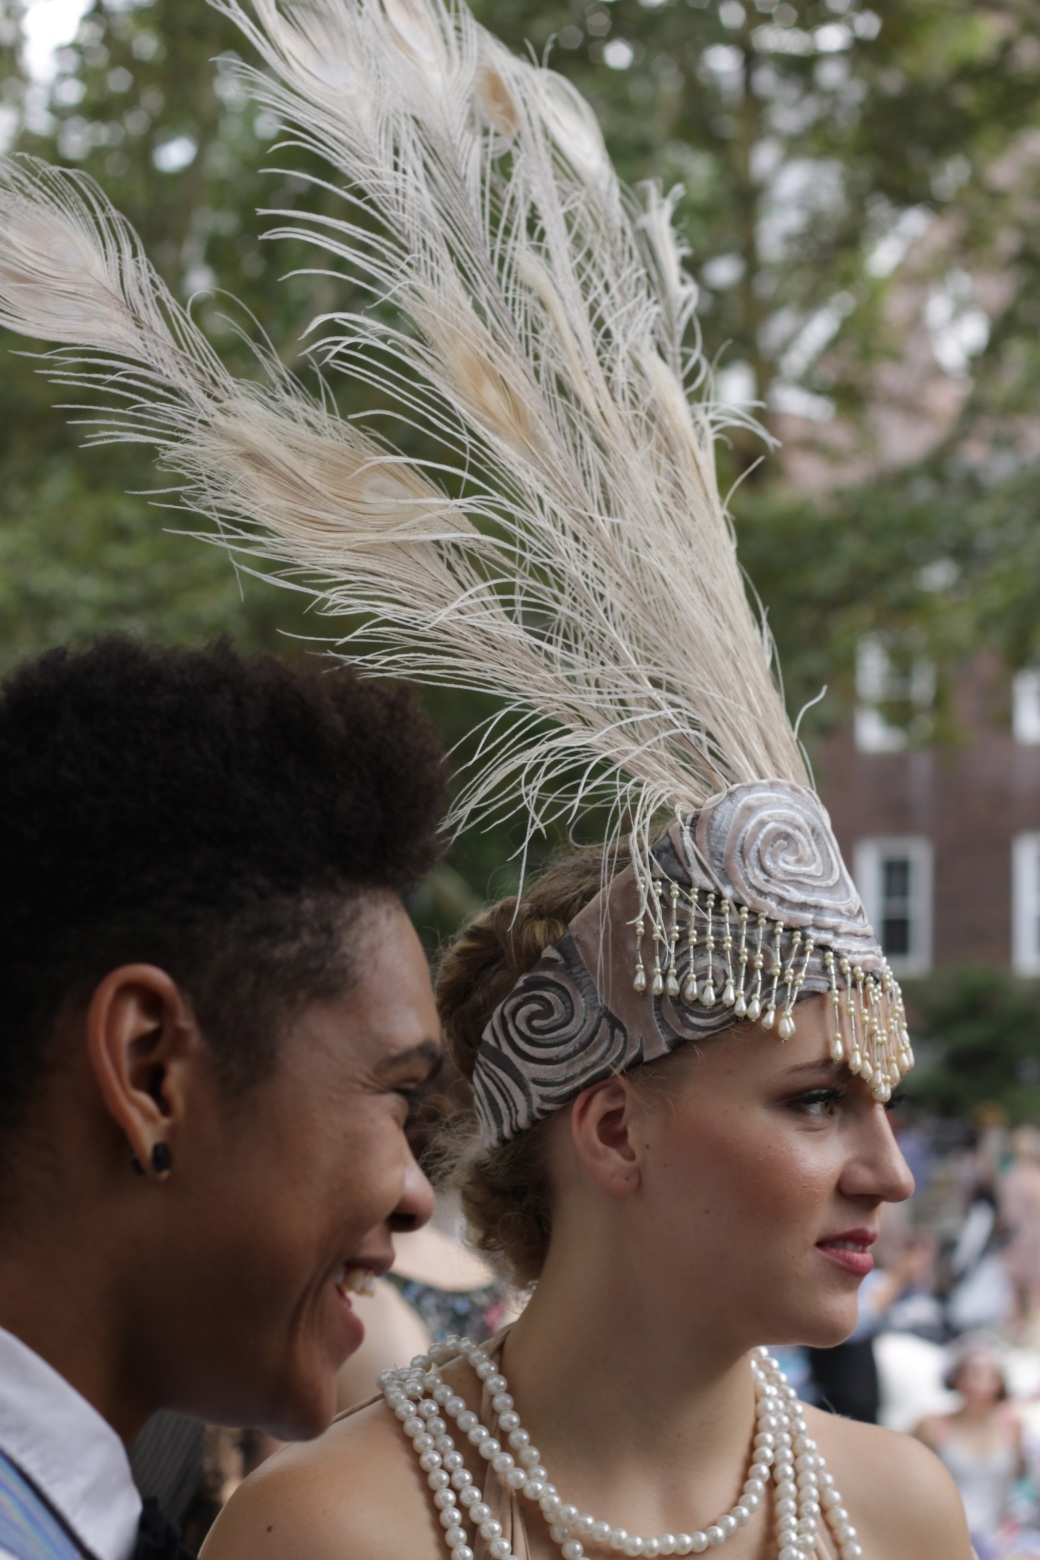 new york city governors island jazz age lawn party august 17 2014 94